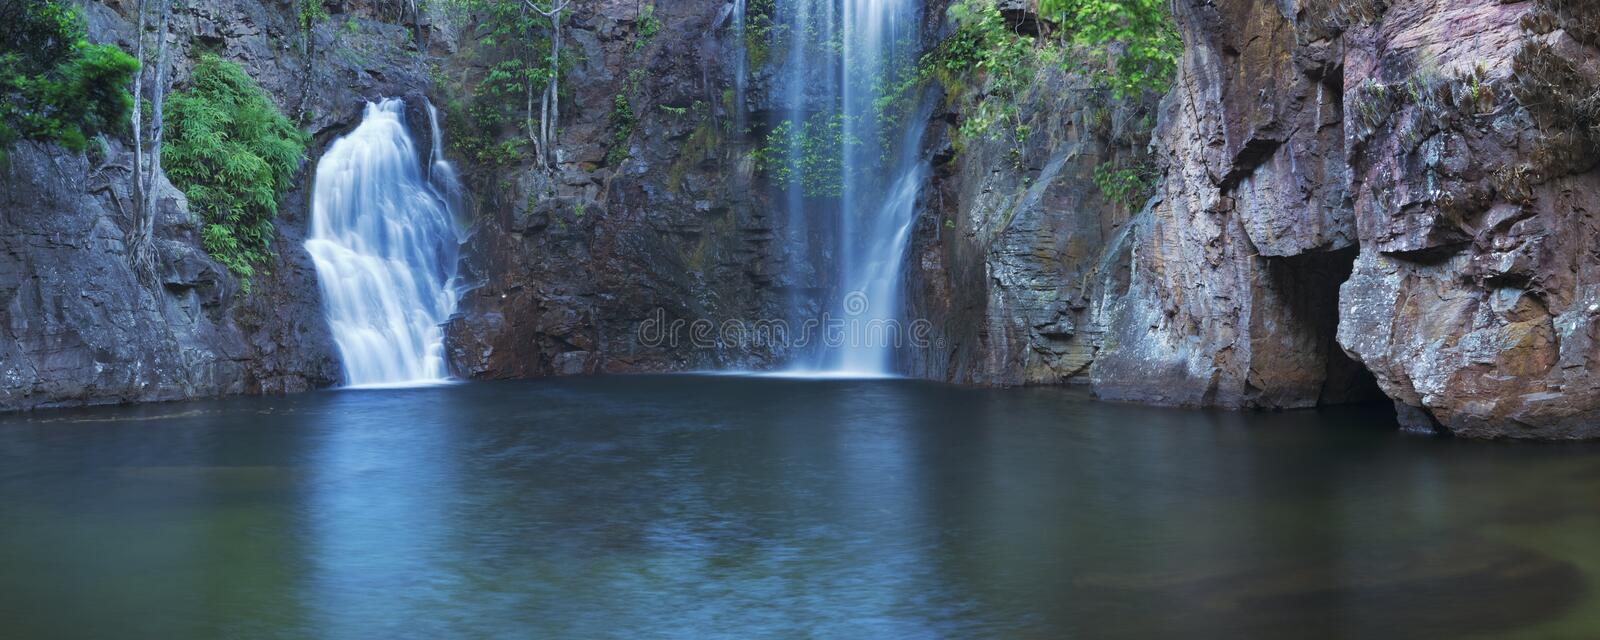 Florence Falls in Litchfield National Park, Australia royalty free stock photo